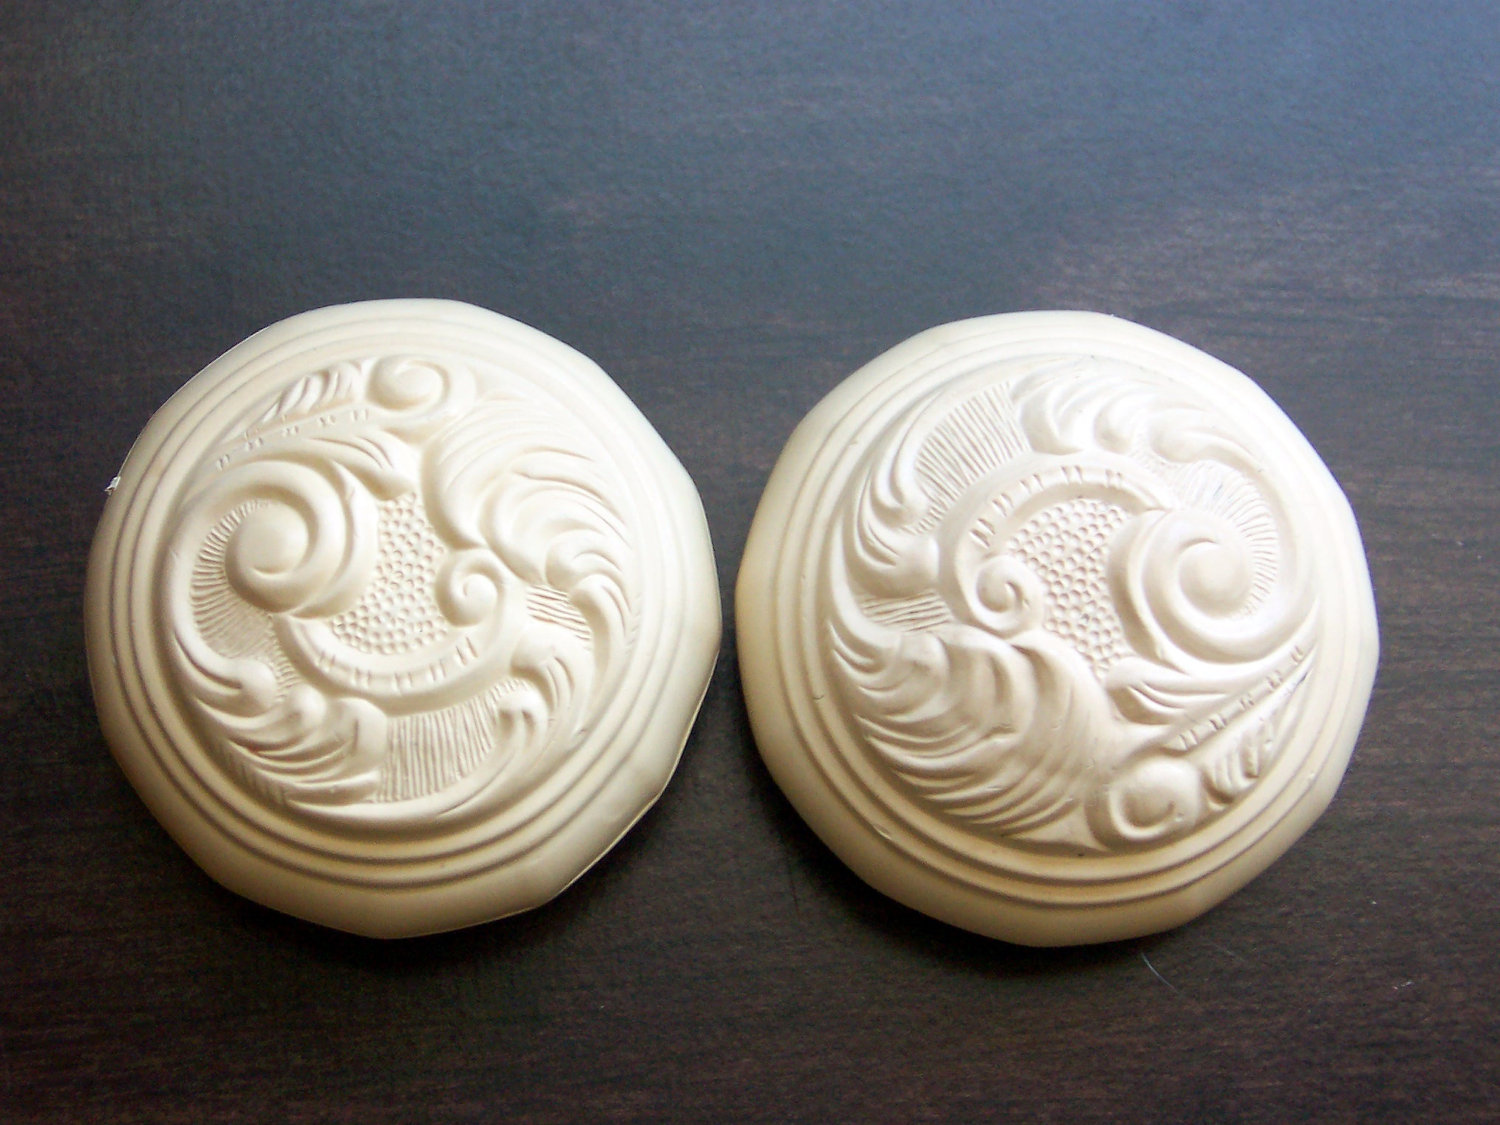 rubber door knob covers photo - 8